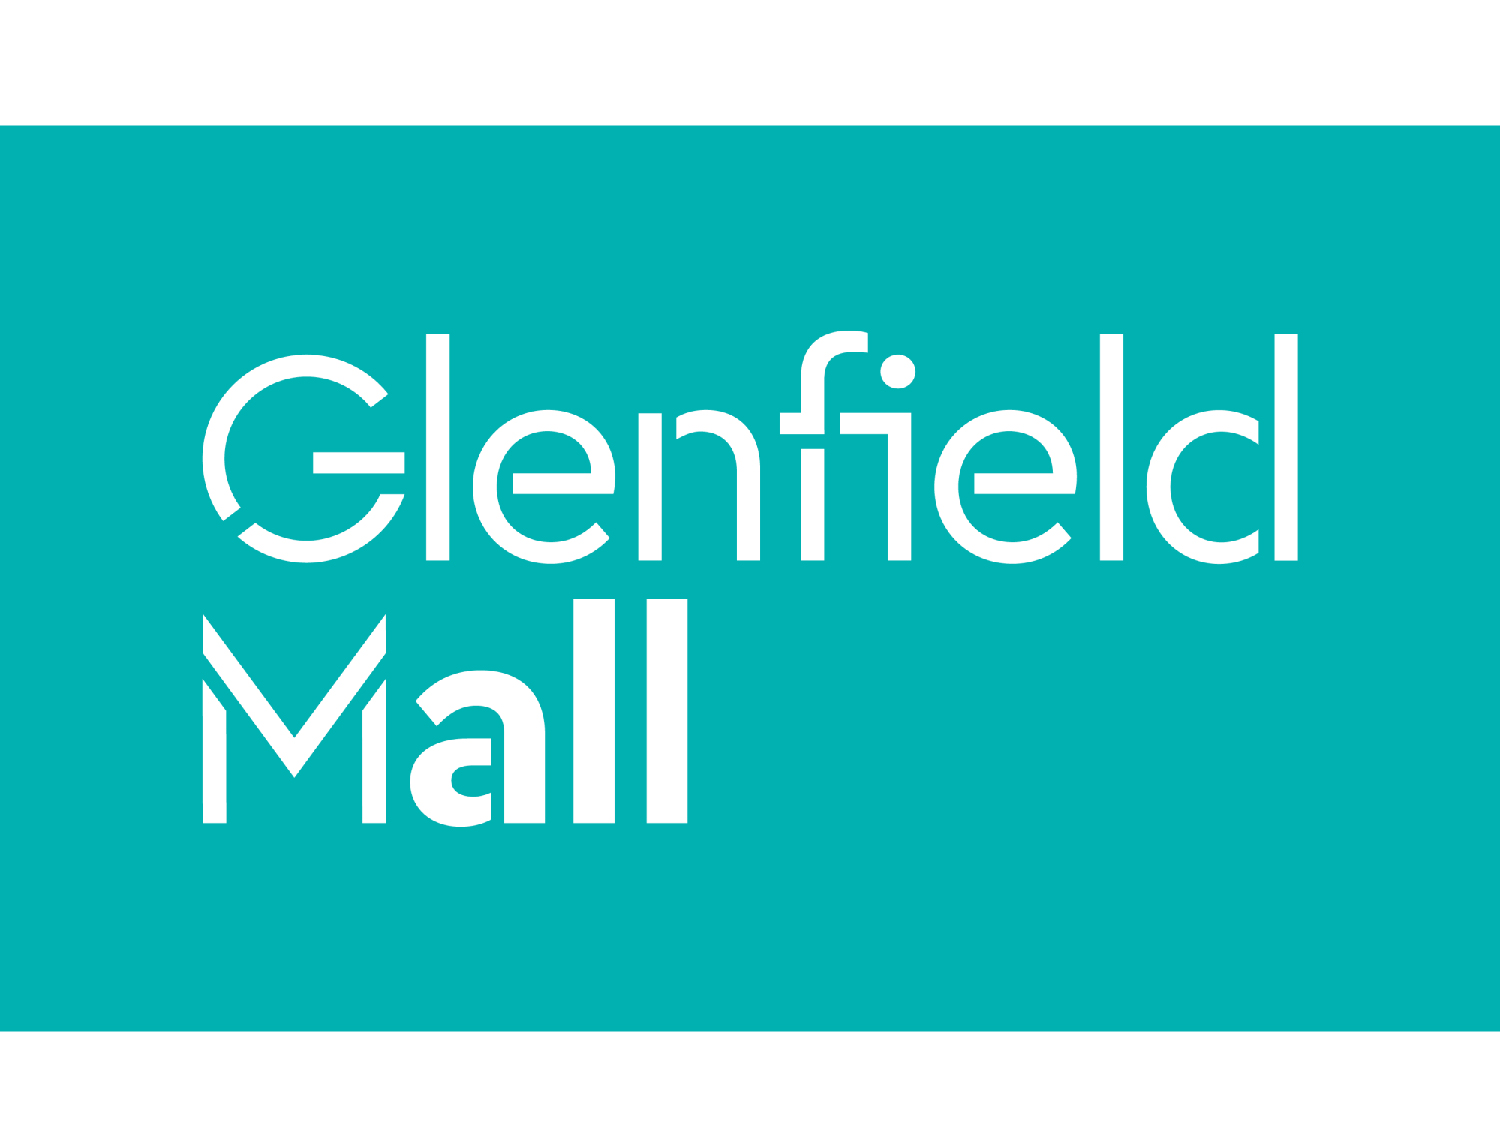 Glenfield Mall